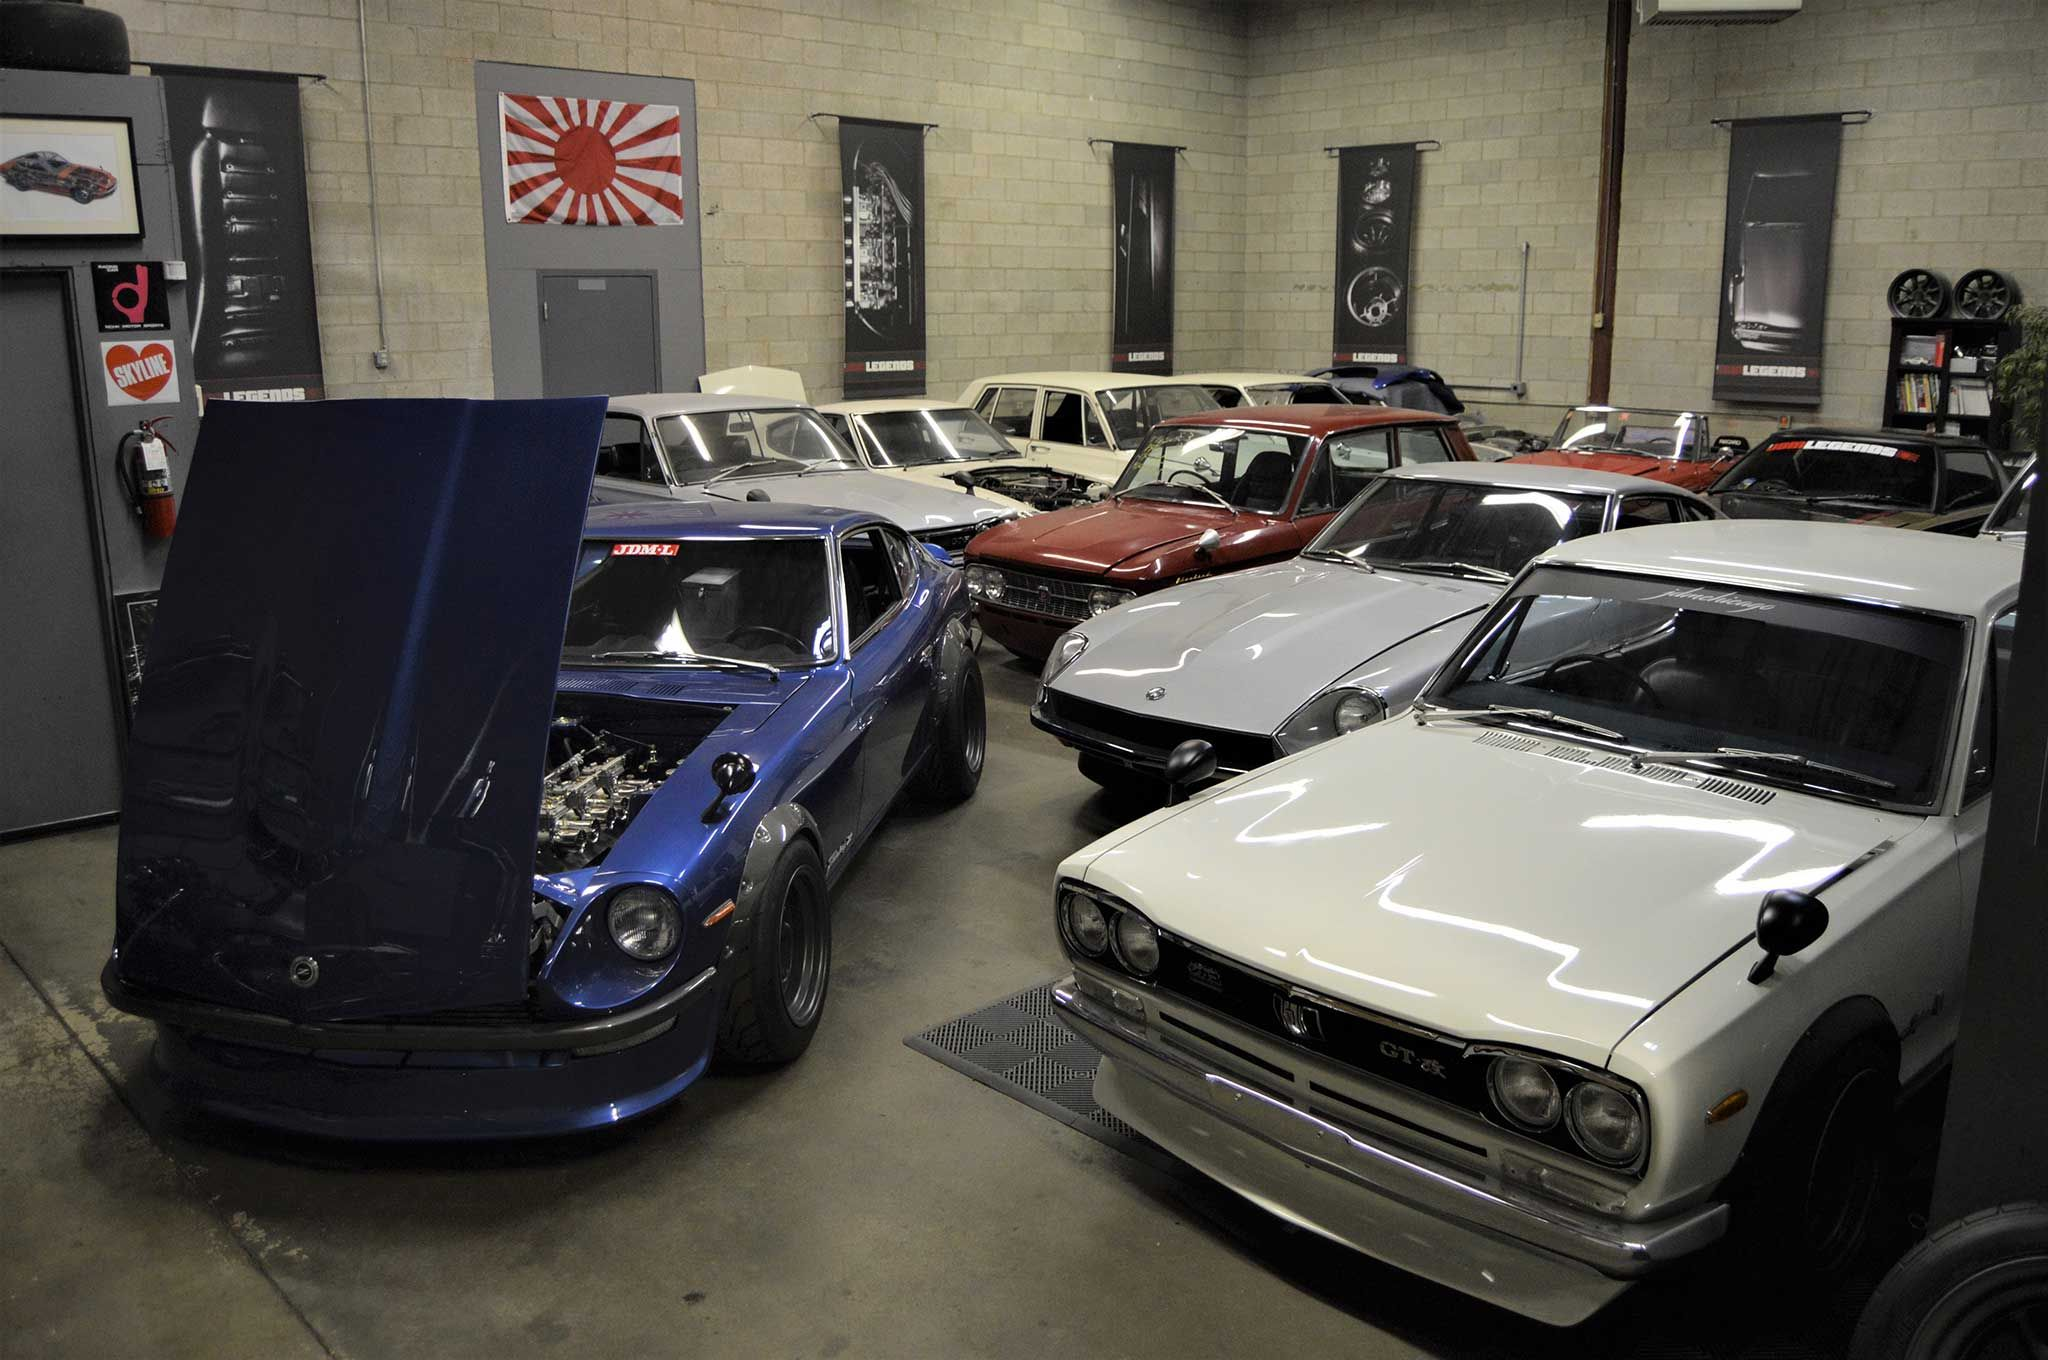 Import Cars for Sale Near Me Awesome How to Import A Jdm Car Importing the Dream